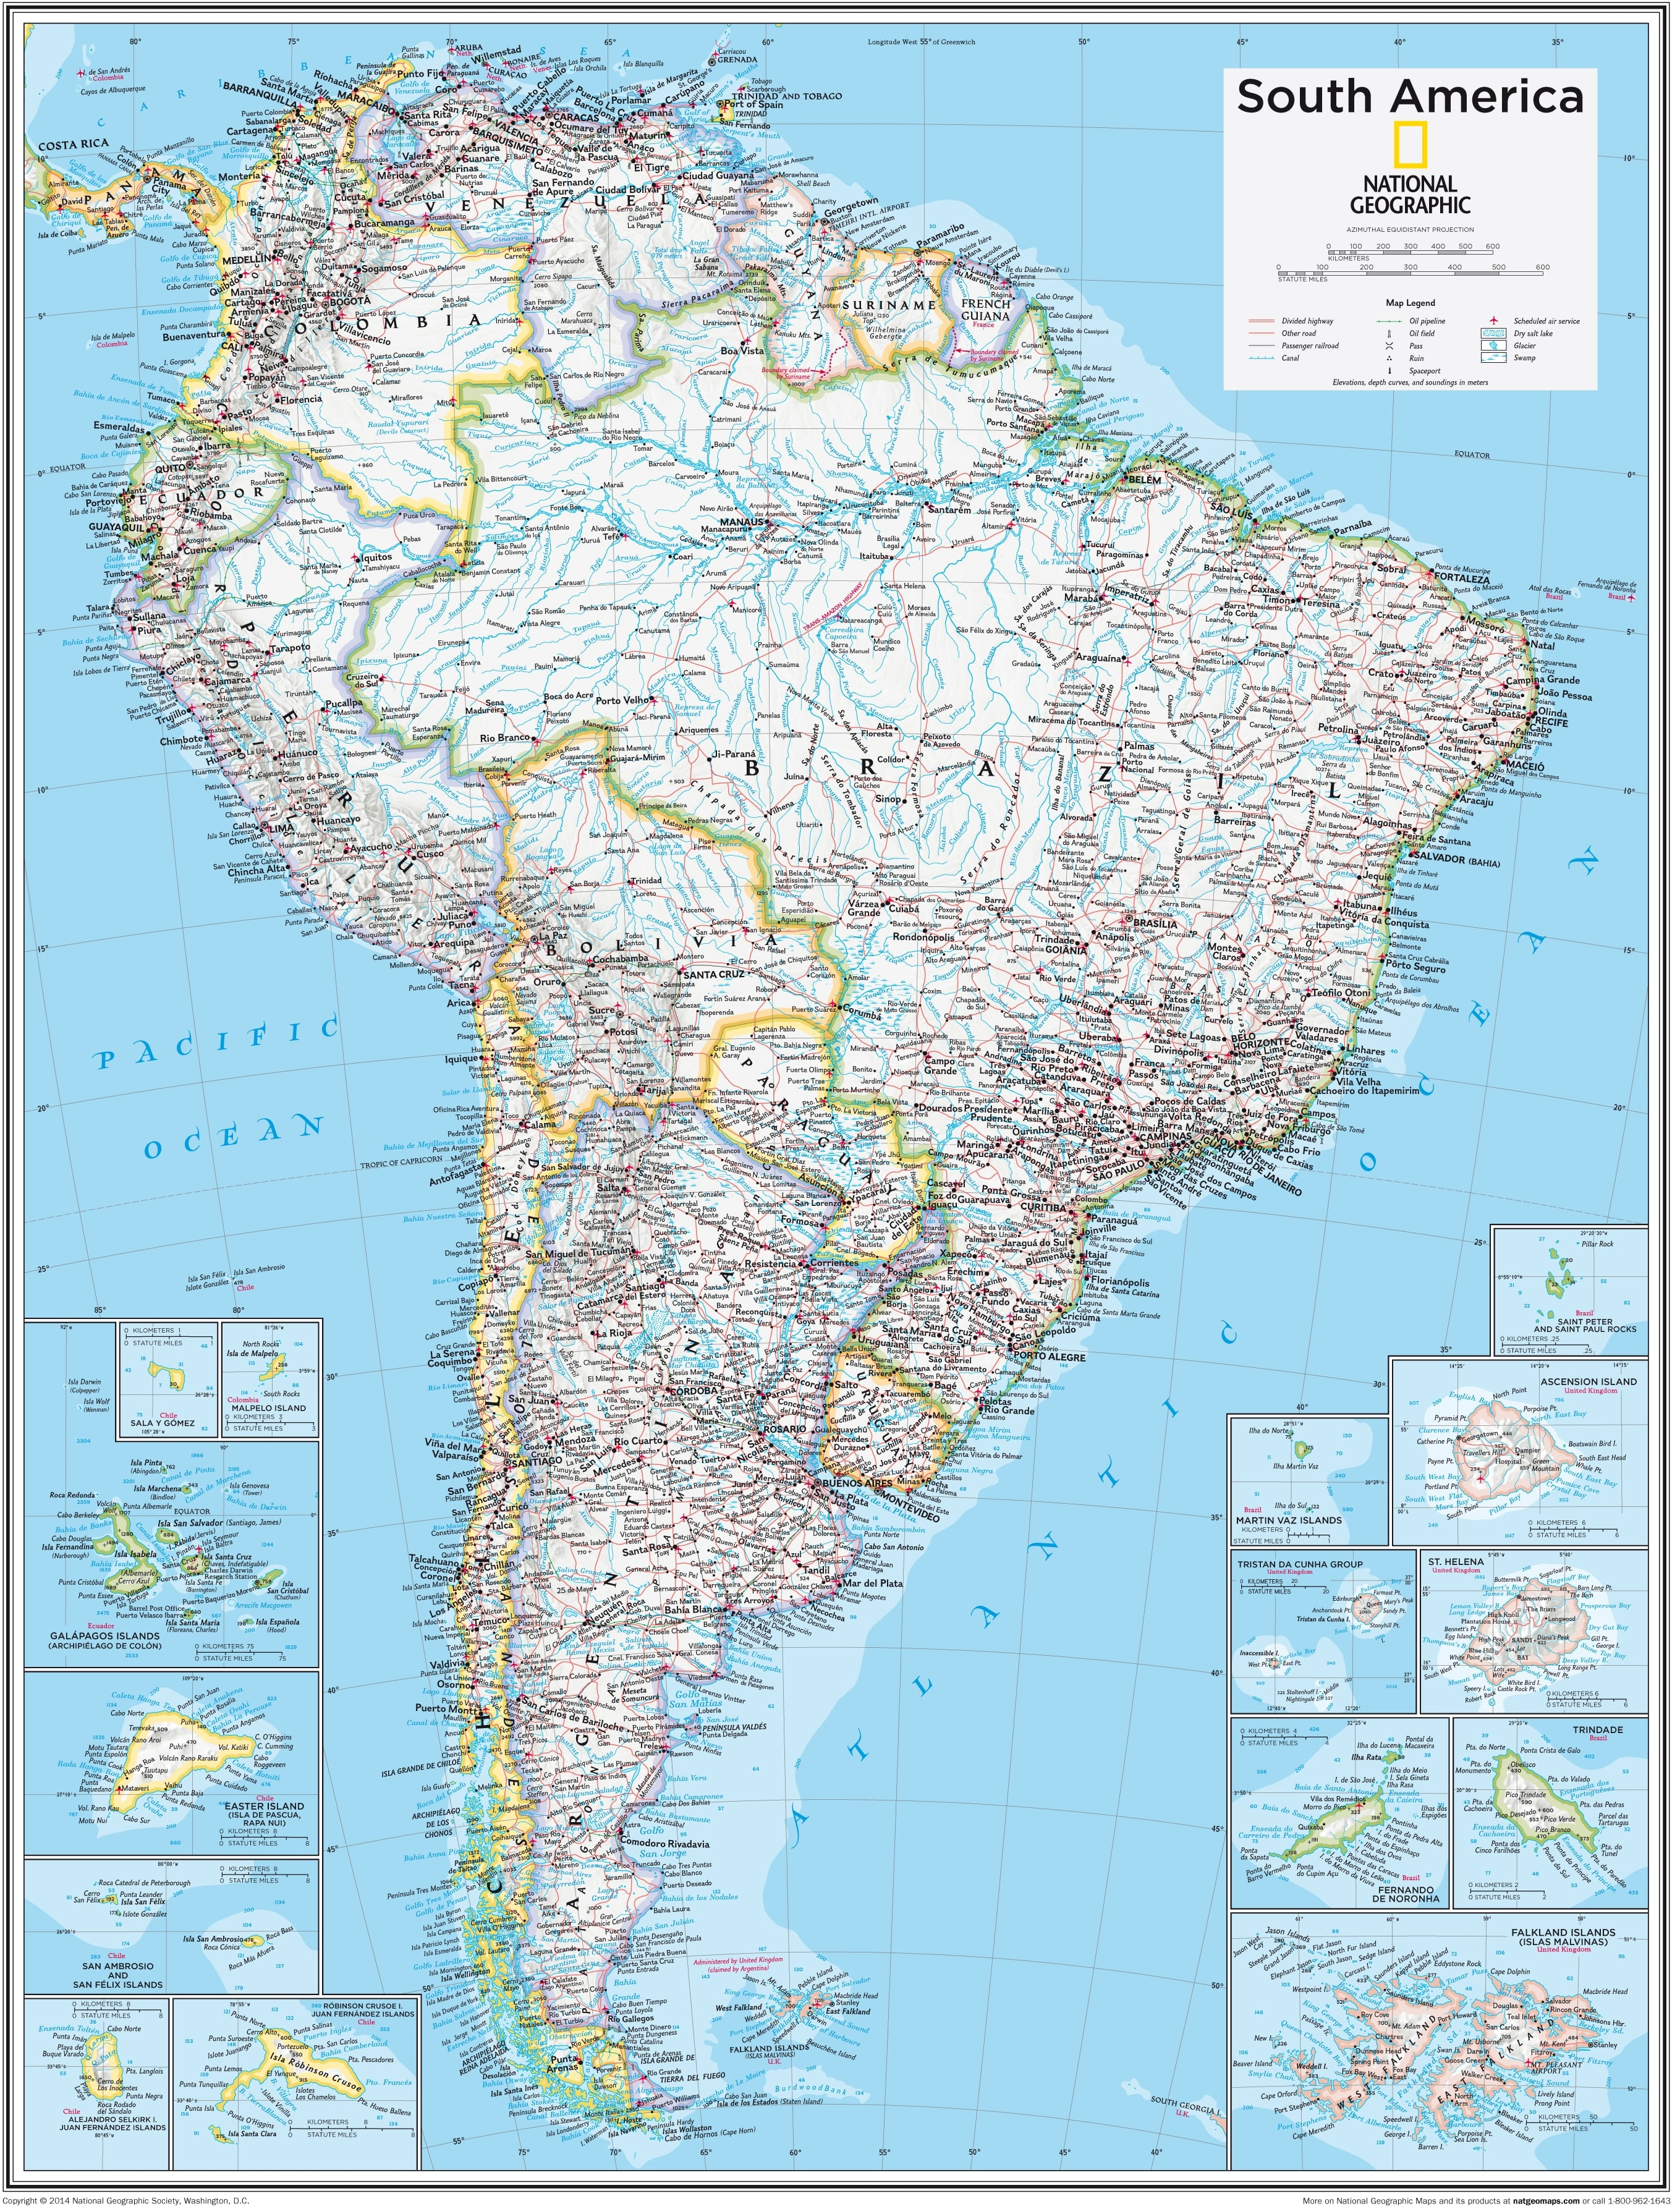 South America 73 x 91cm on map of southern uk, map of southern grenada, map of southern zambia, map of southern east coast, paraguay map south america, map of southern ethiopia, temples in south america, ancient temples south america, map of southern us beaches, southern cone of latin america, map of africa, the southern region of america, map of central andes, map of southern cambodia, road map south america, map of southern singapore, map of southern mediterranean countries, map of southern us states, map of southern continent, map of central america,